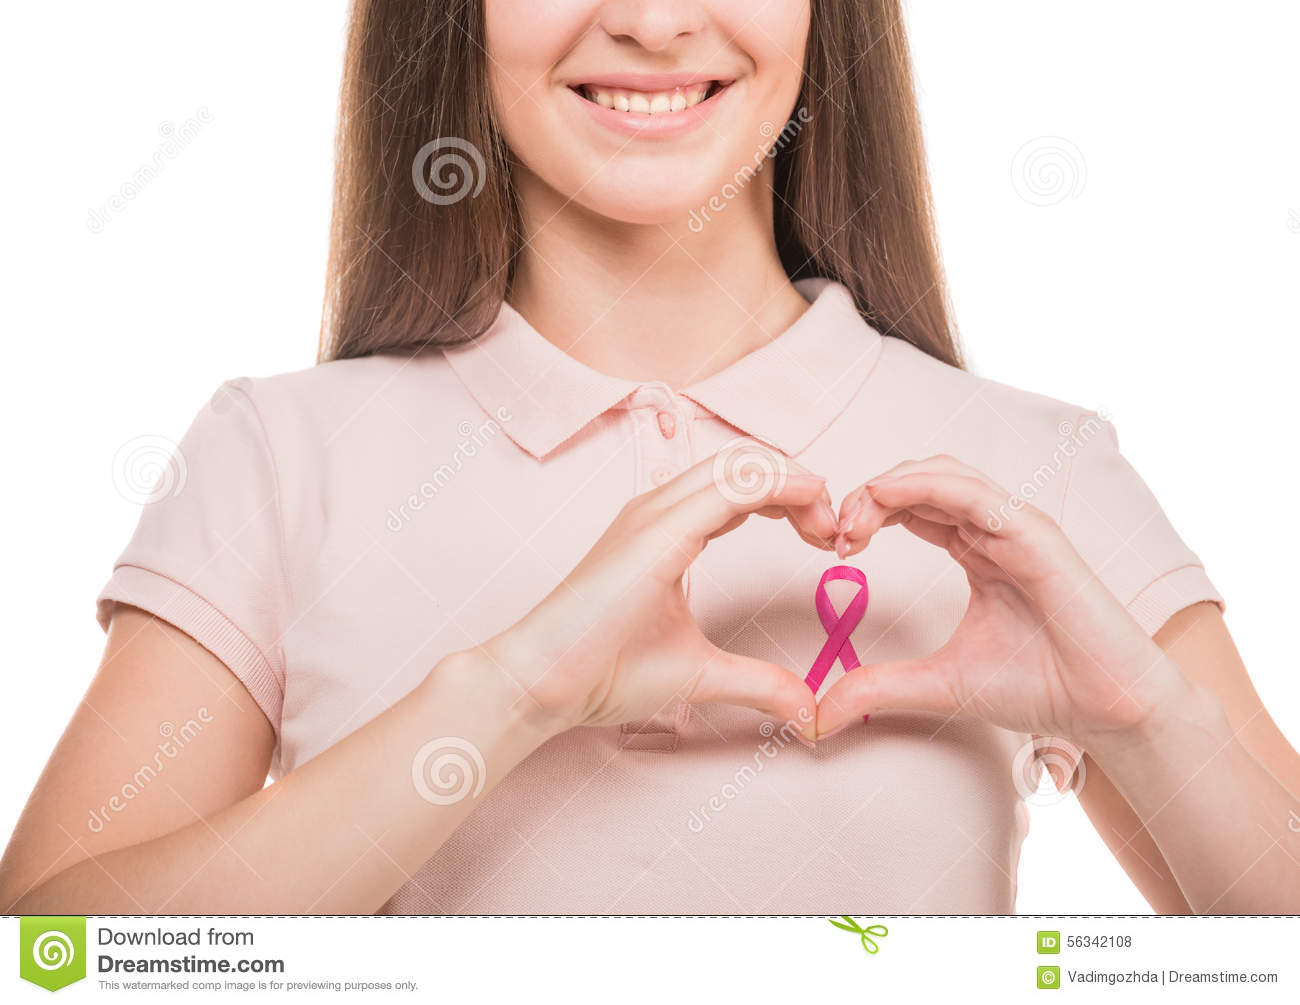 breast cancer young woman jpg 1200x900